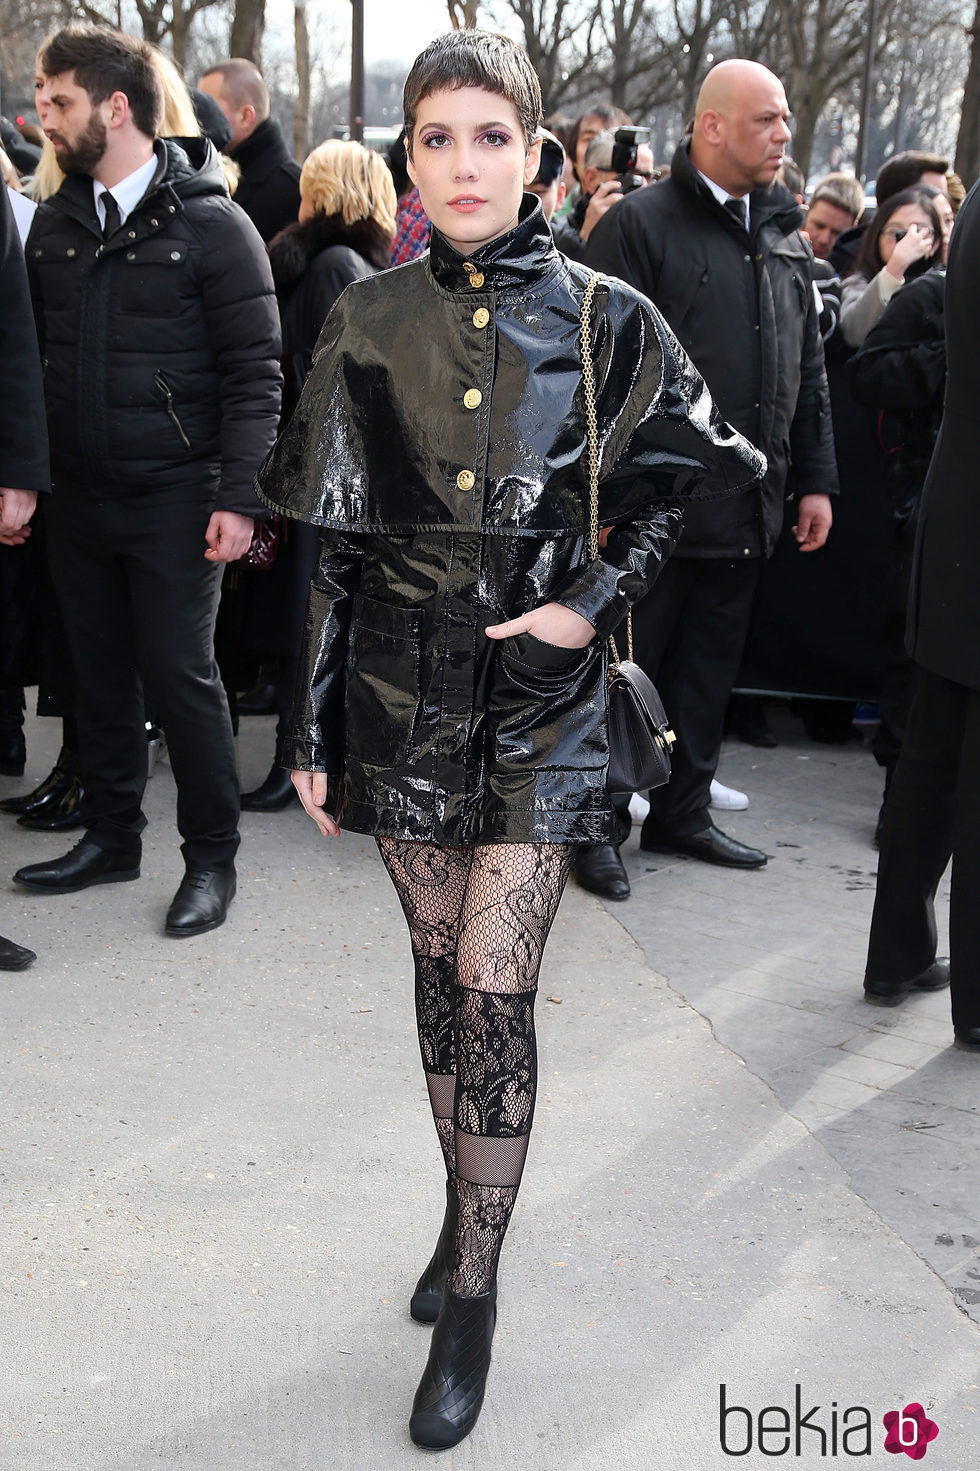 halsey llegando al desfile de chanel en la fashion week de paris 2016 bekia. Black Bedroom Furniture Sets. Home Design Ideas